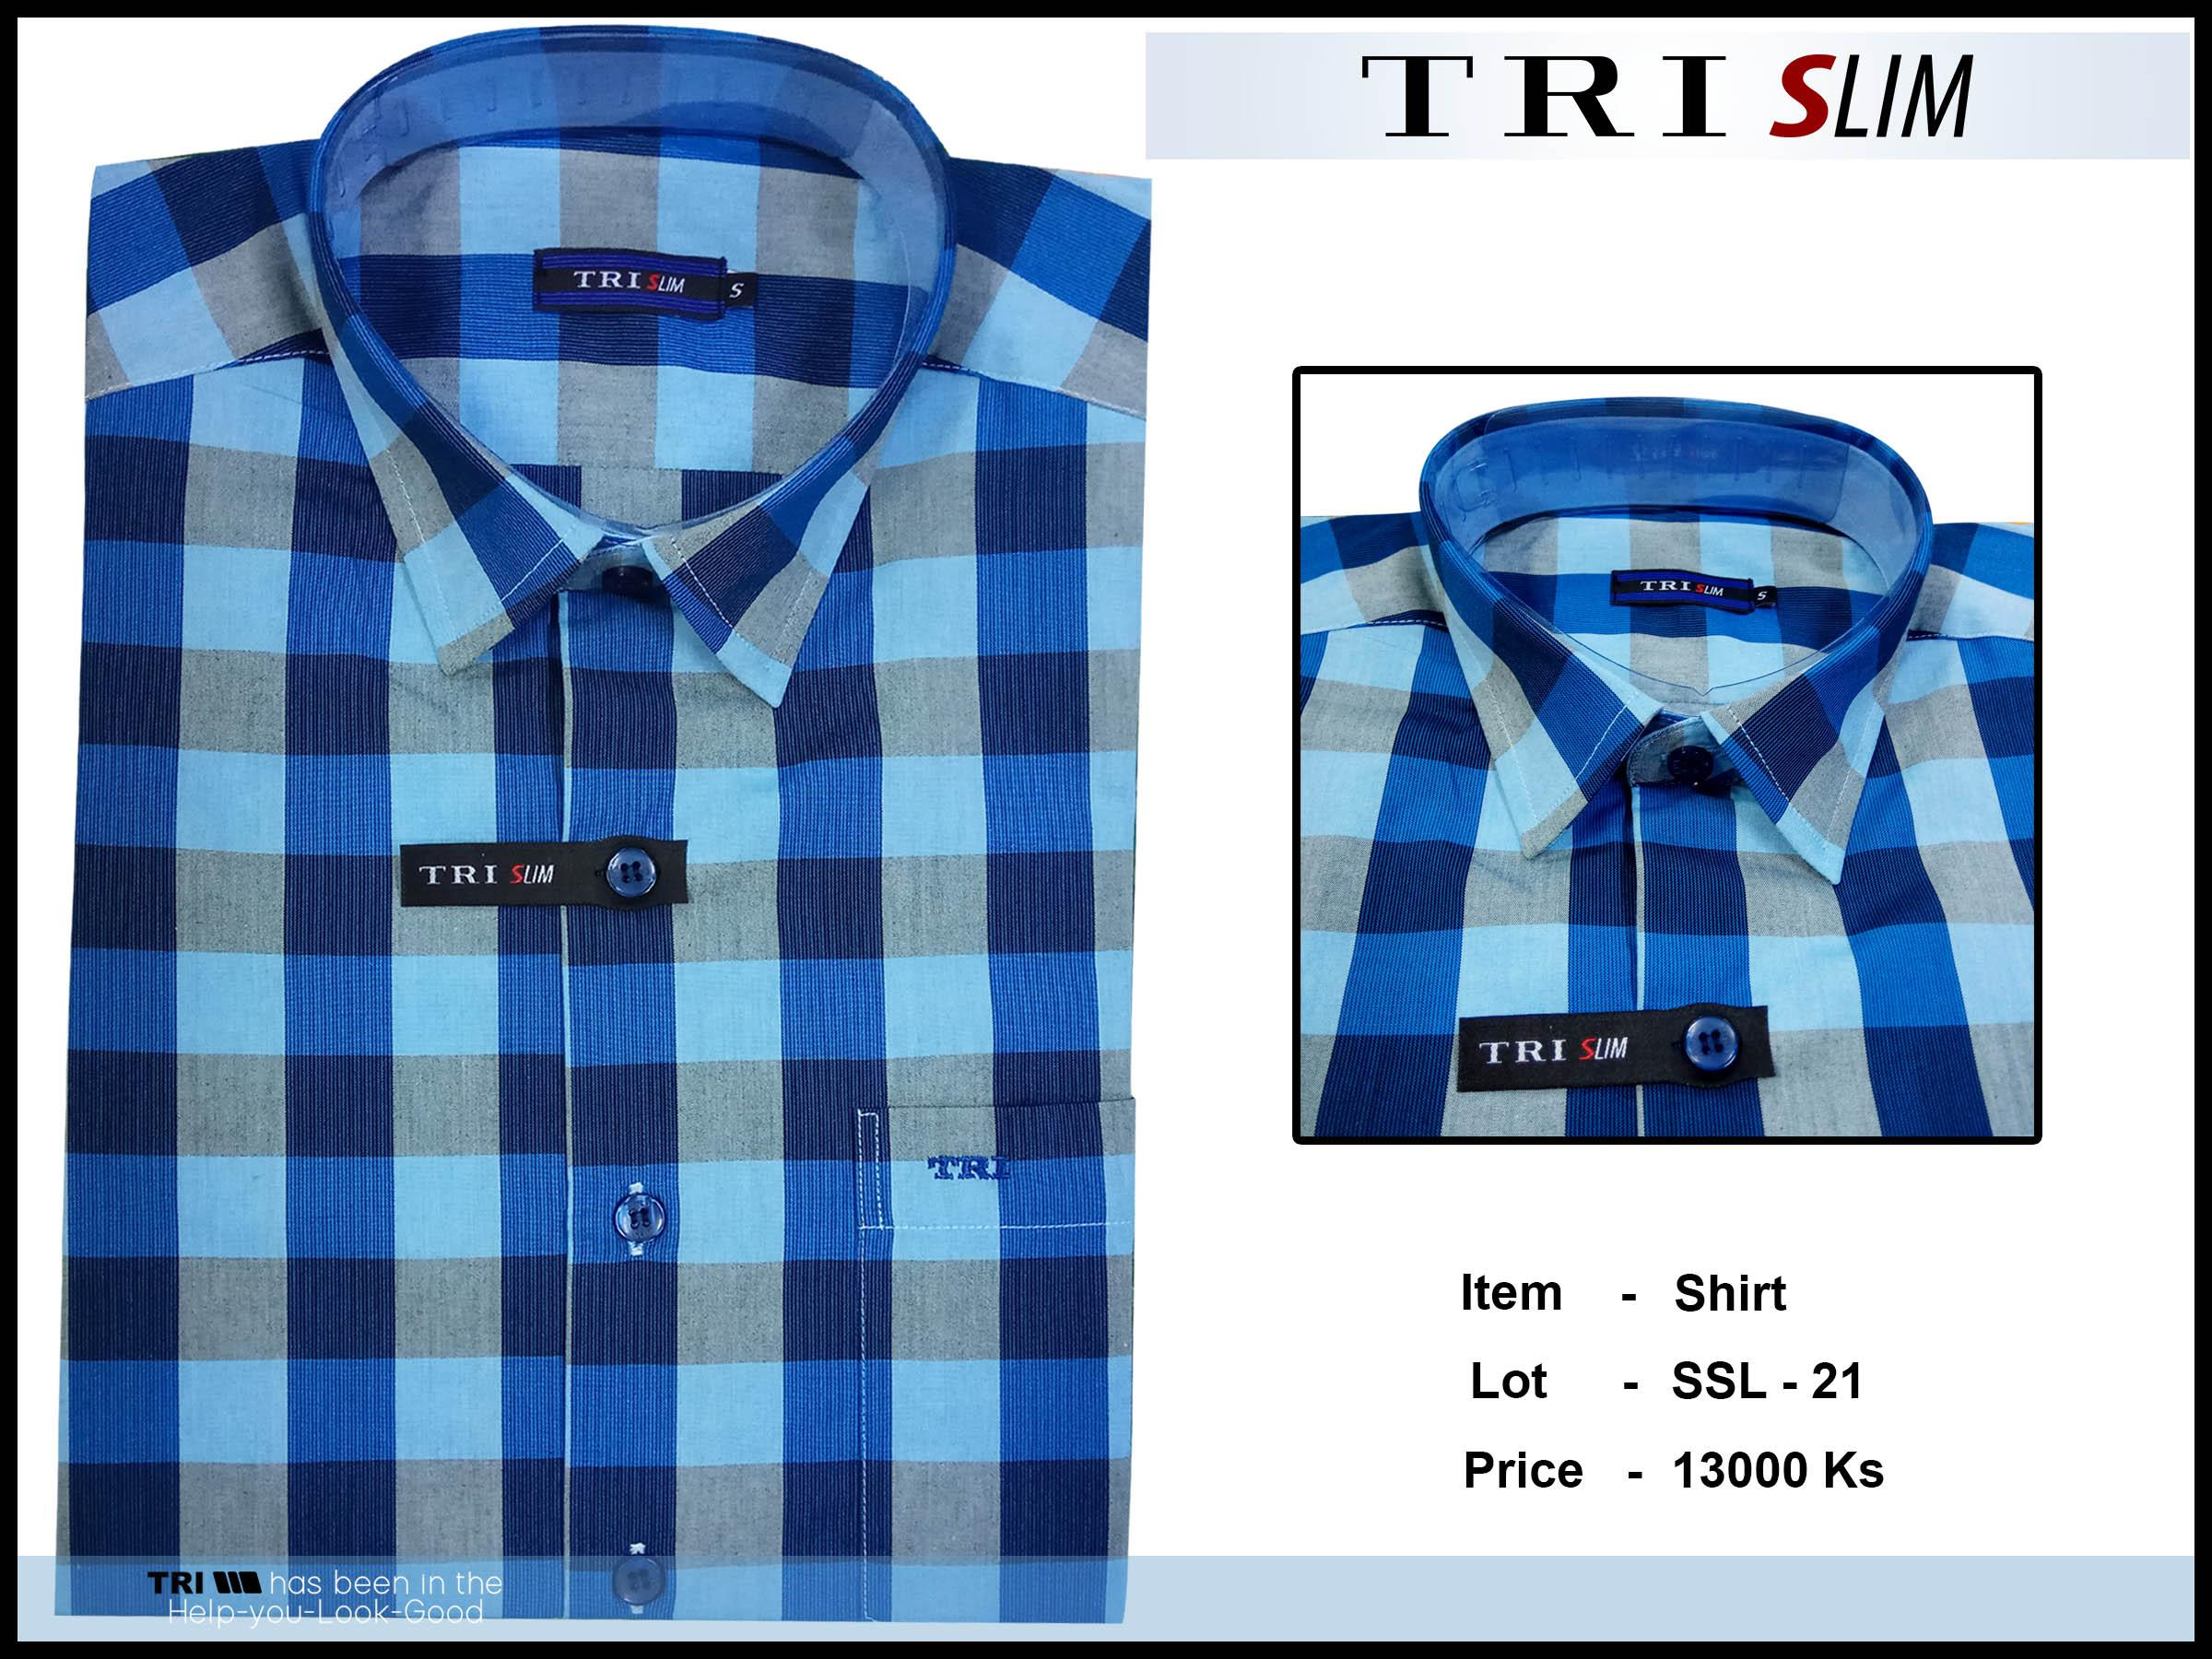 Tri Slim Shirt SSL - 21 - 4